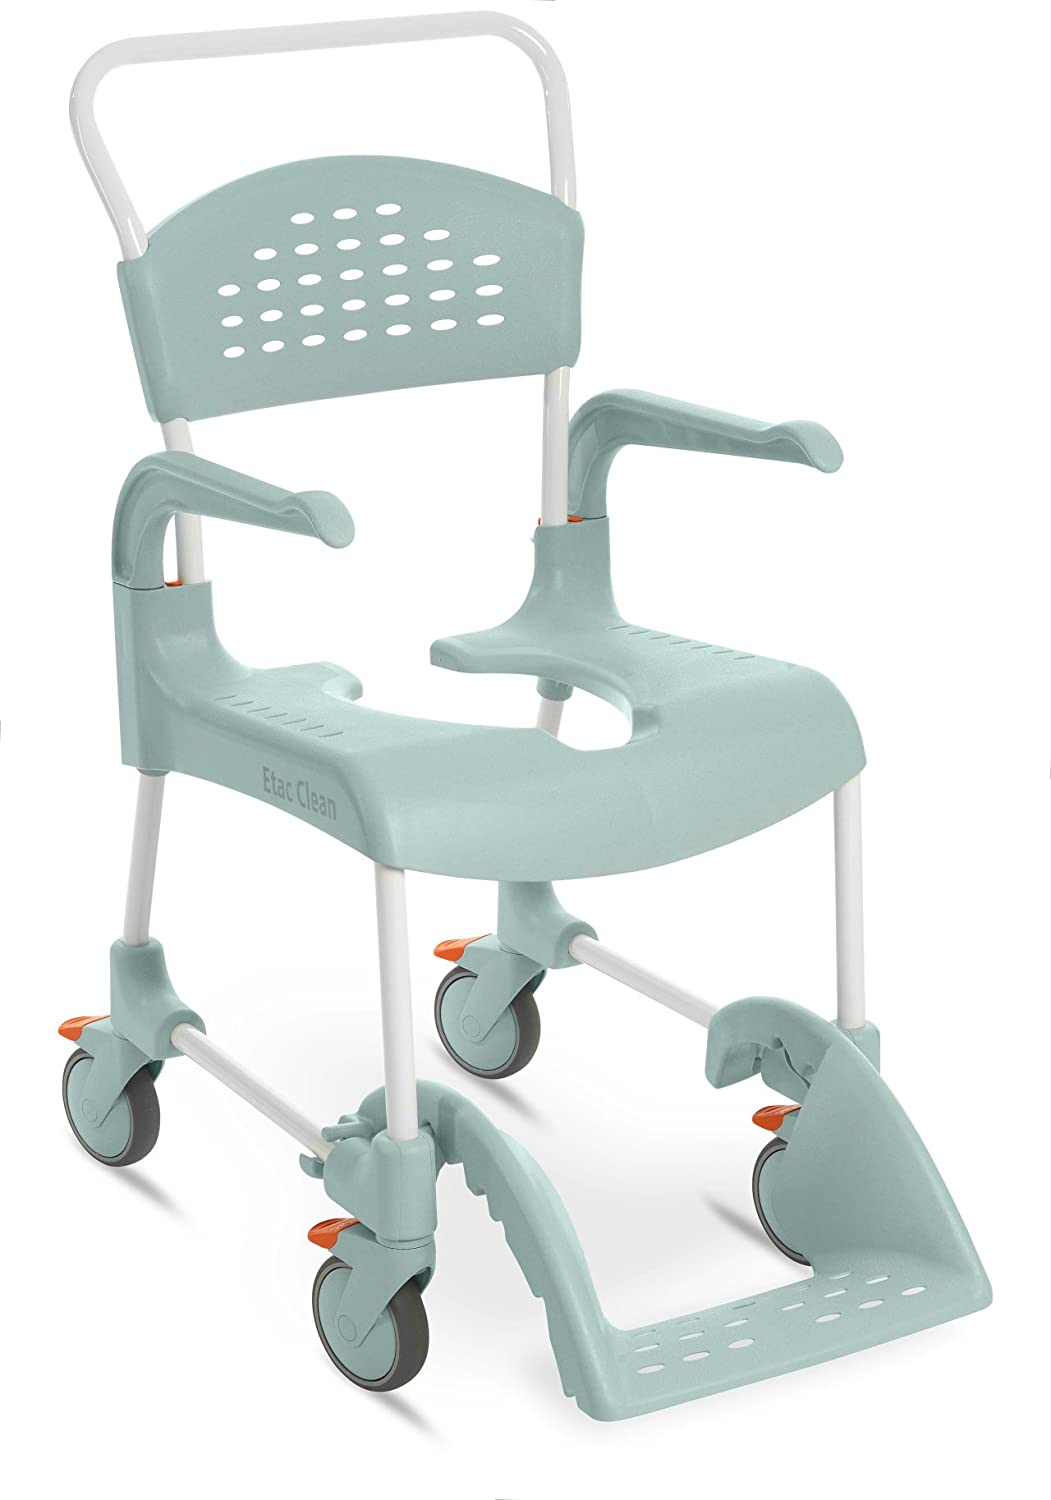 Amazon.com: Clean Shower Chair: Health & Personal Care